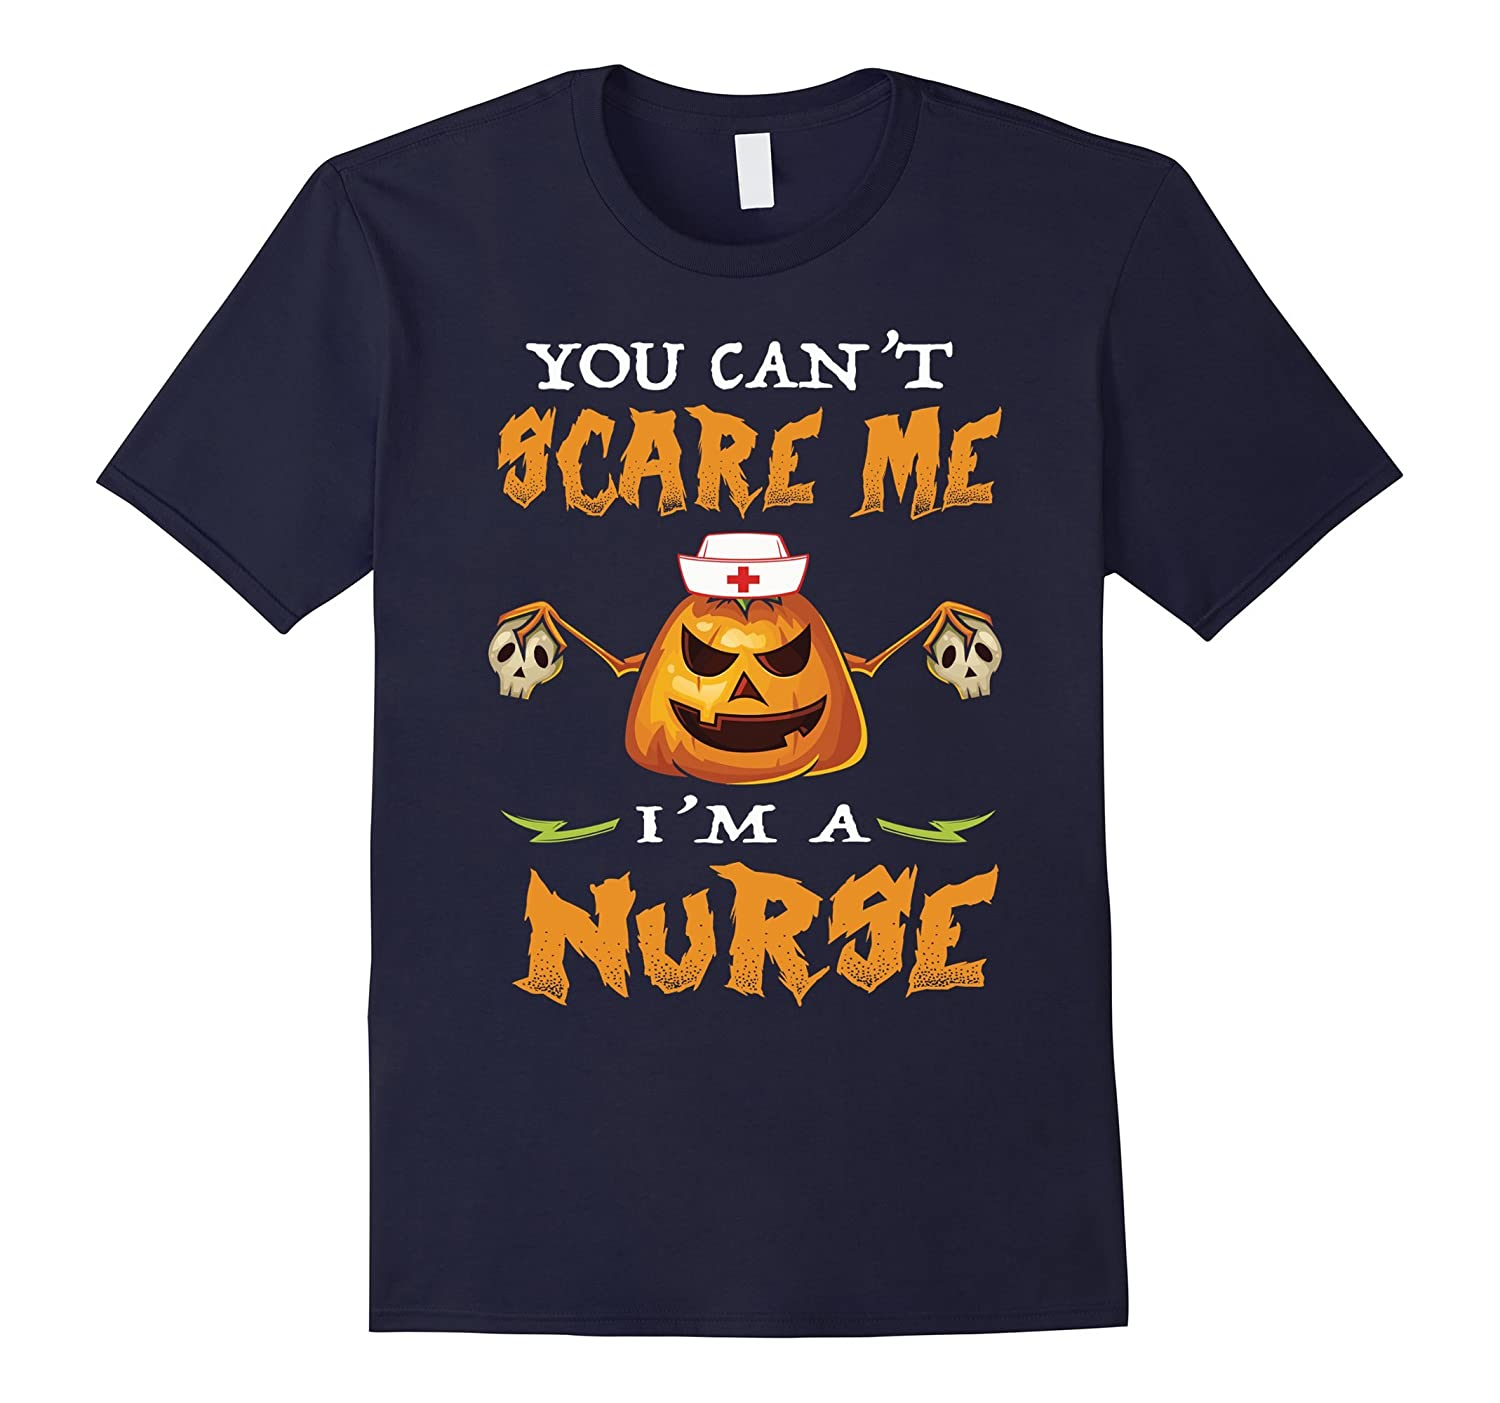 You can't scare me I'm a Nurse - Funny Halloween Nurse shirt-CL